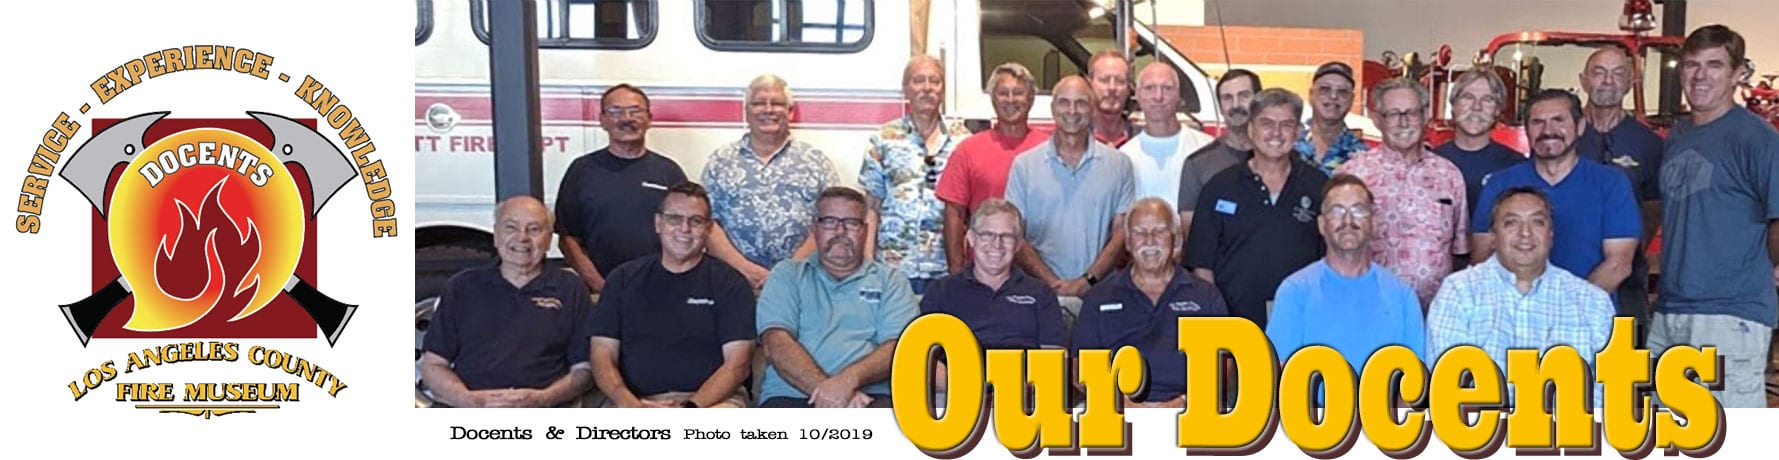 Our docents, photo of the docents and directors taken in 10/2019 Service, Experience, Knowledge